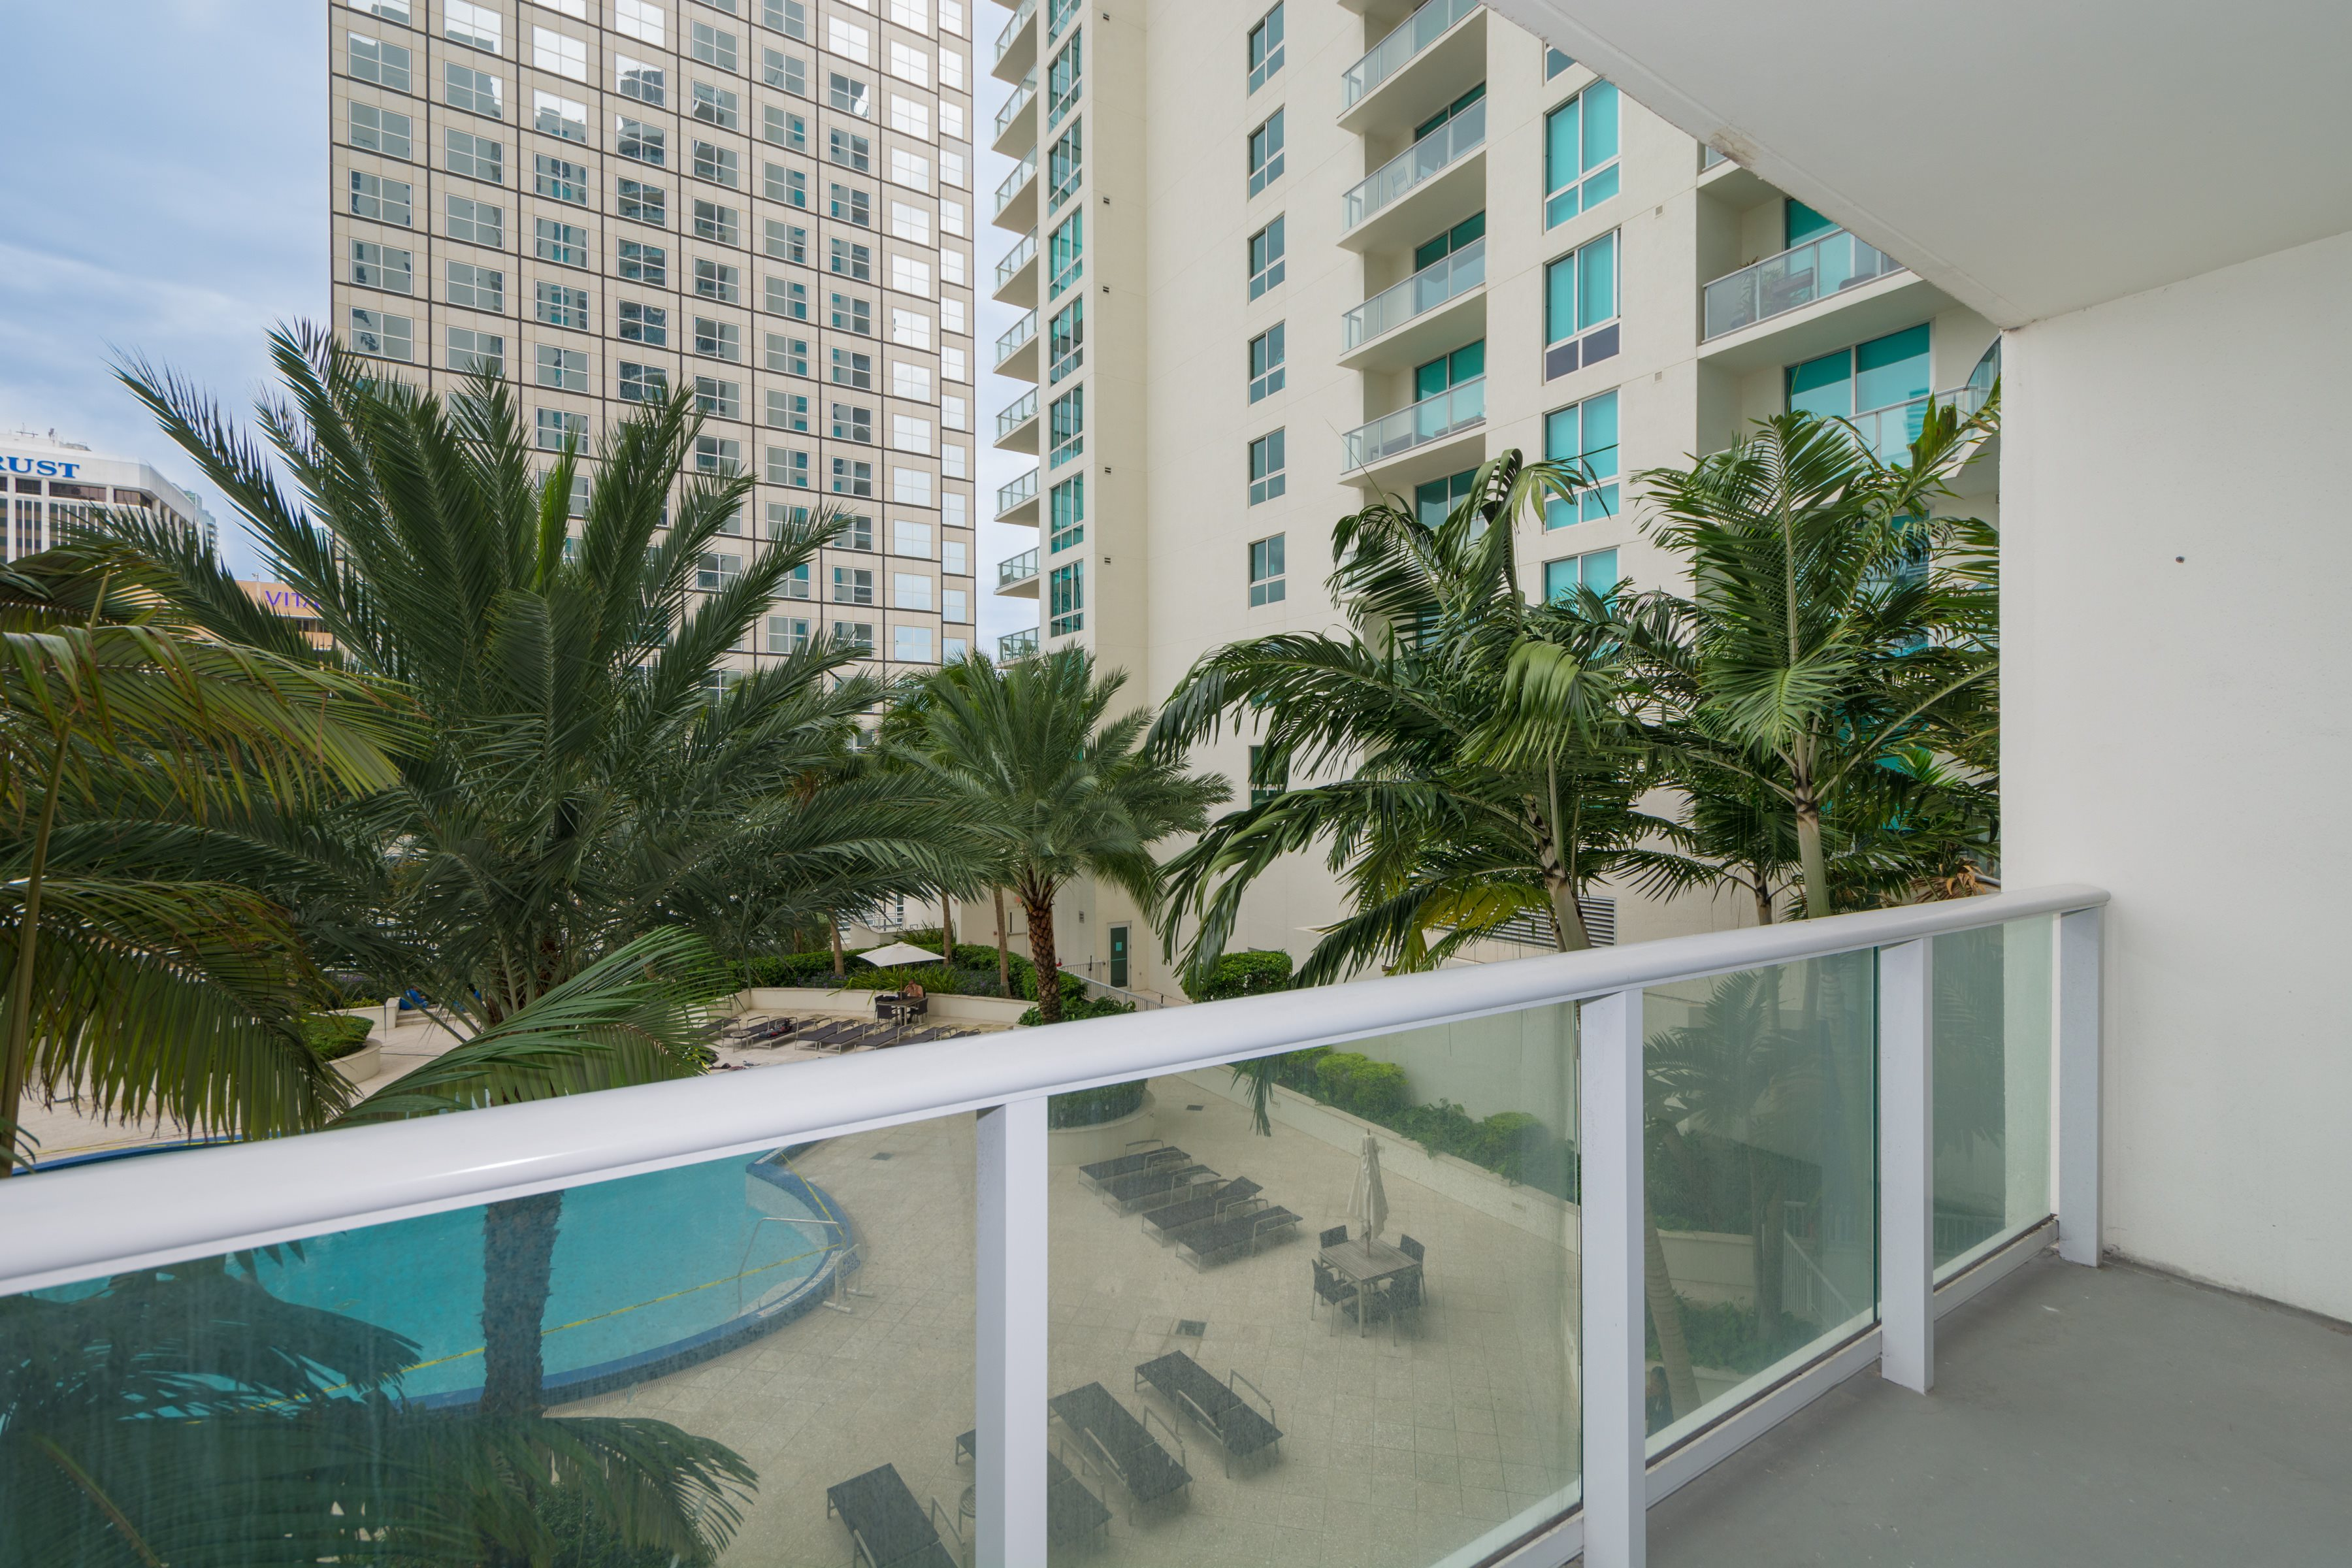 Condominium for Sale at 300 S Biscayne Bl #T-1403 300 S Biscayne Bl T-1403 Miami, Florida, 33131 United States